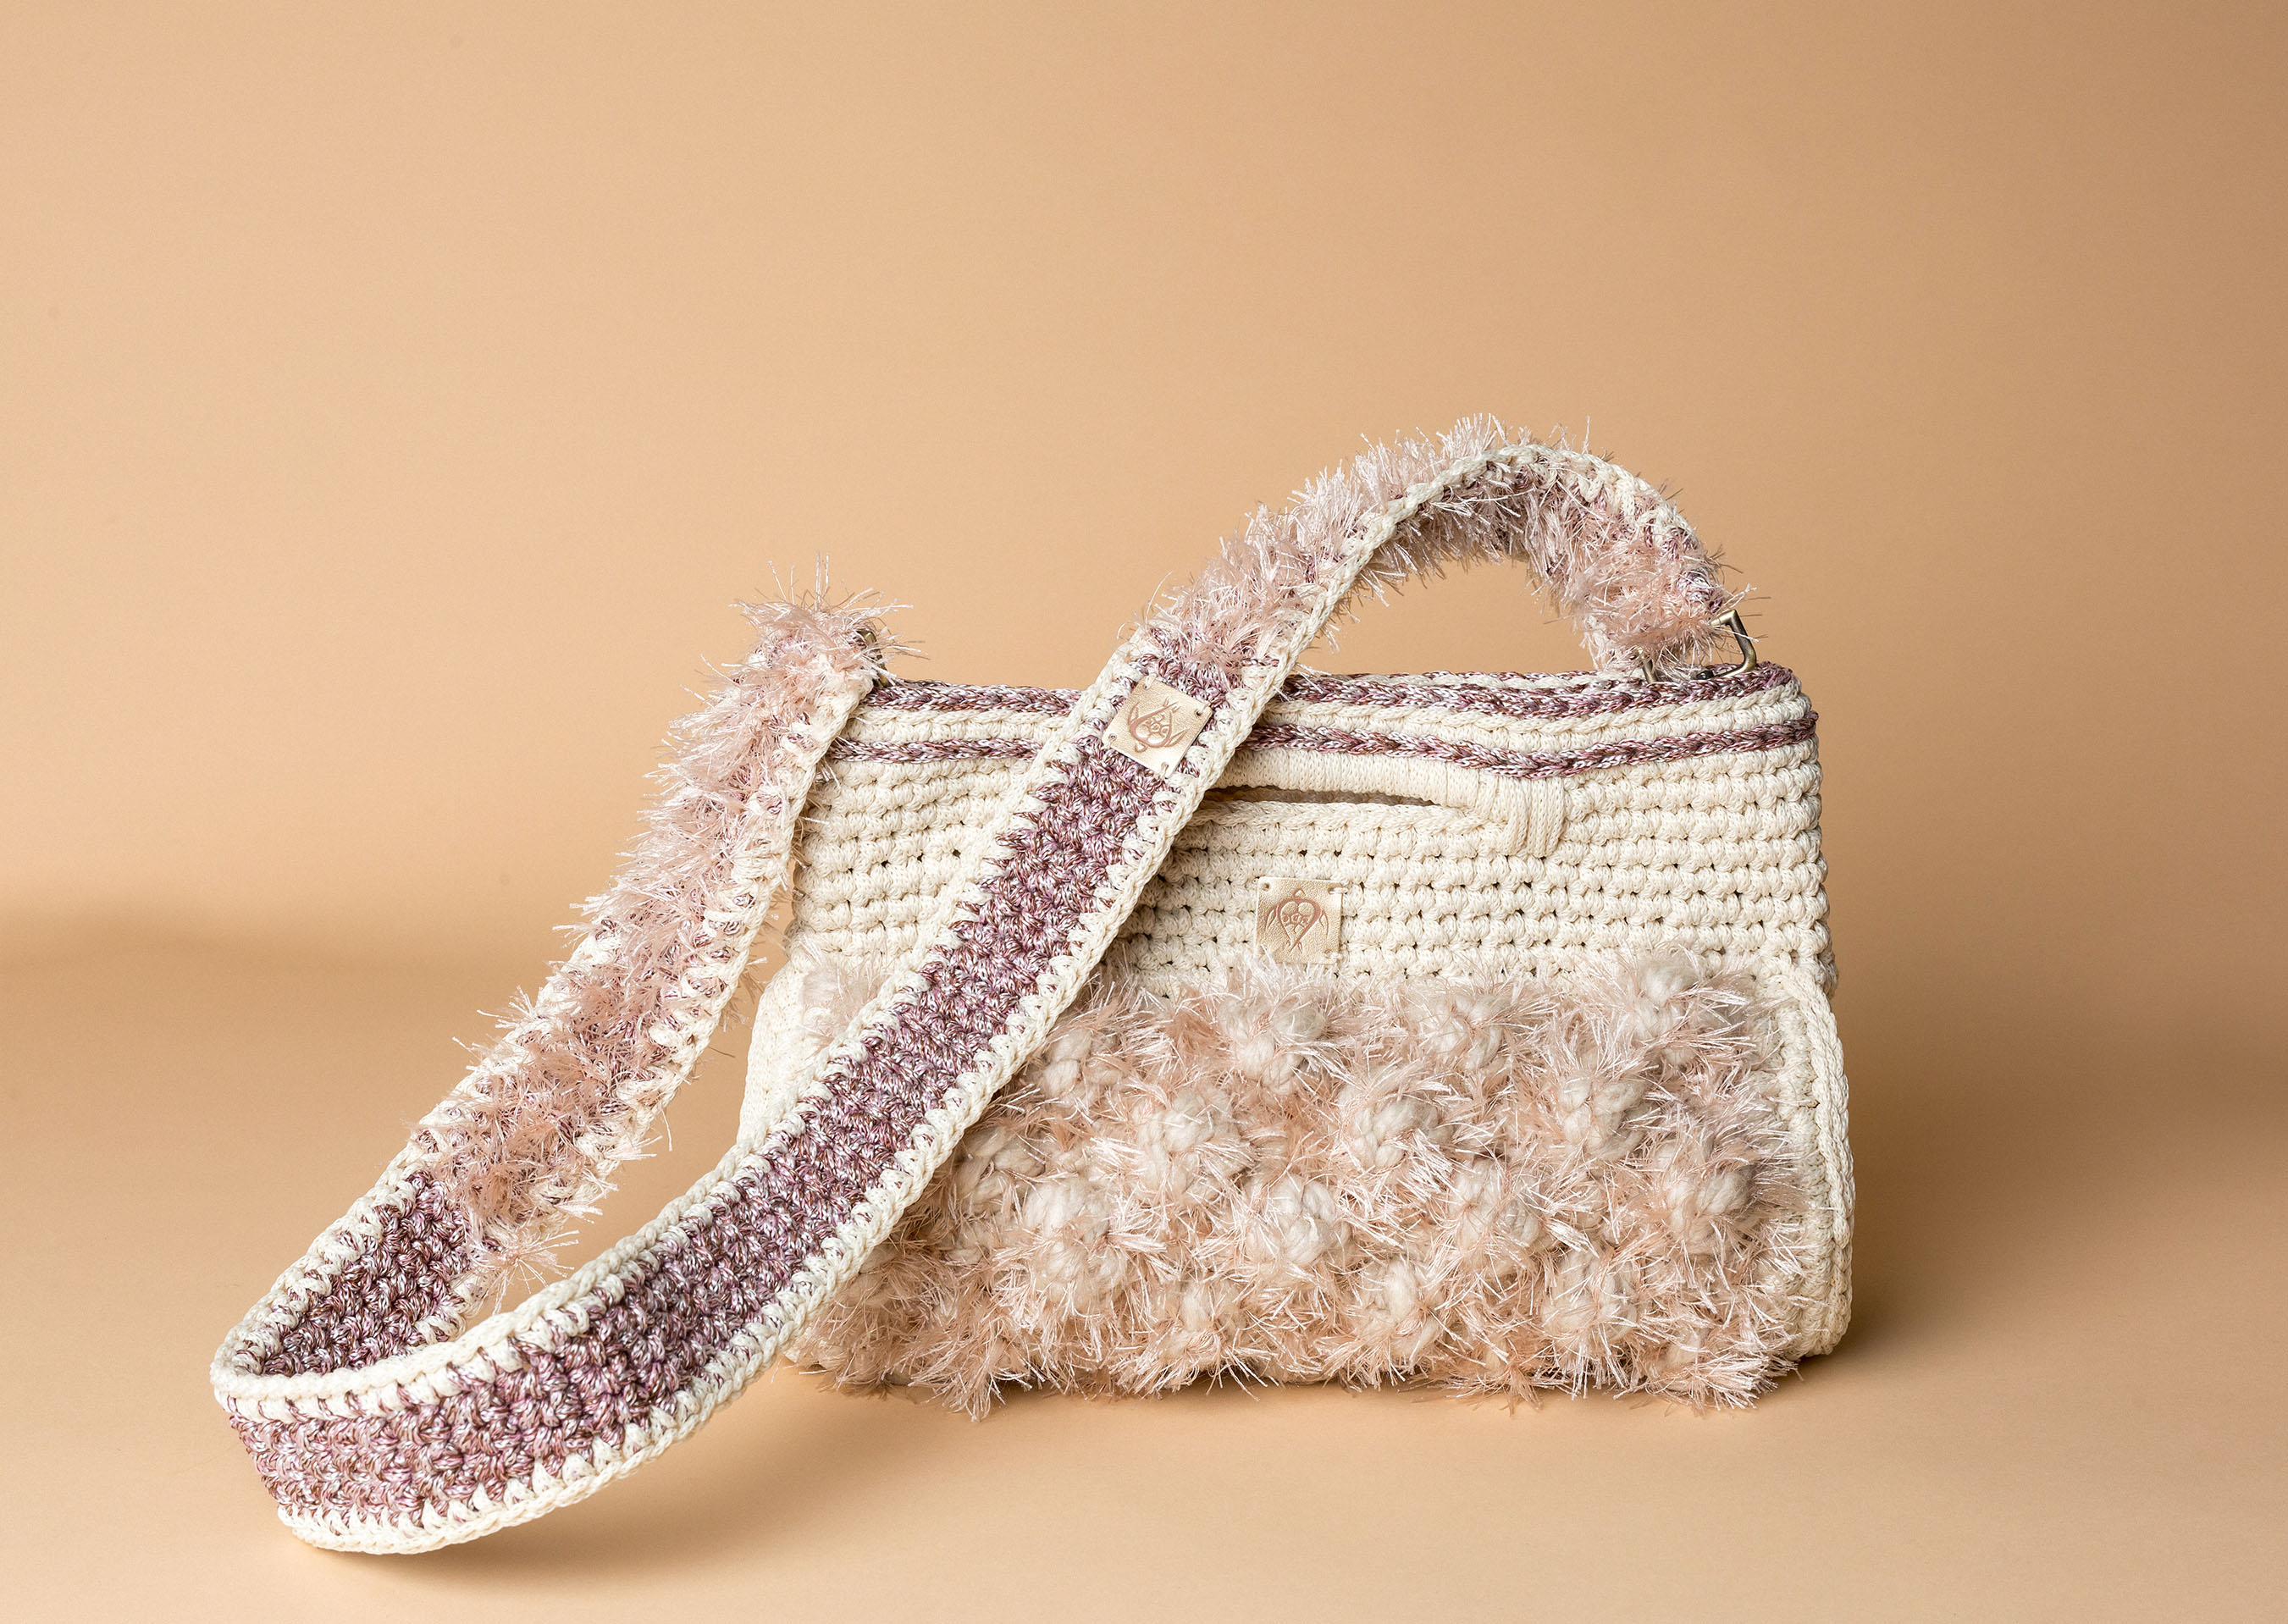 knitted handbag in off white